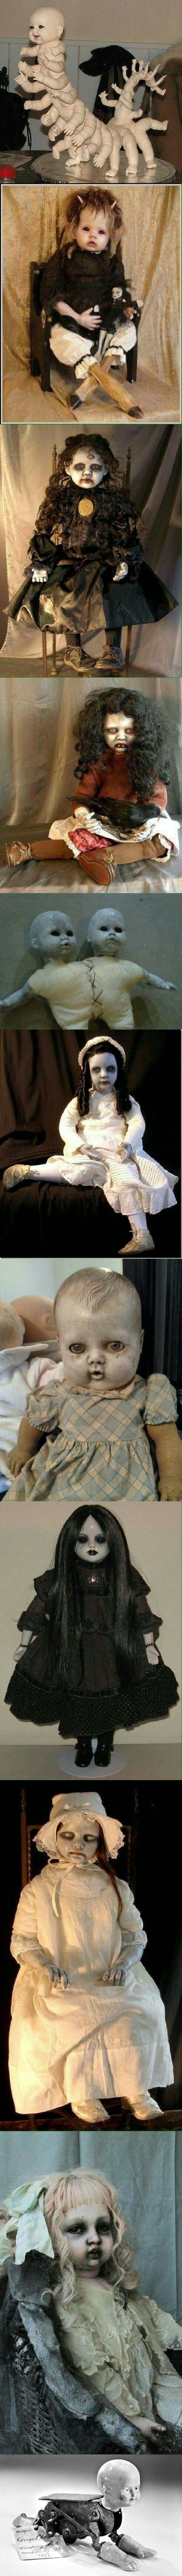 Insanely creepy dolls